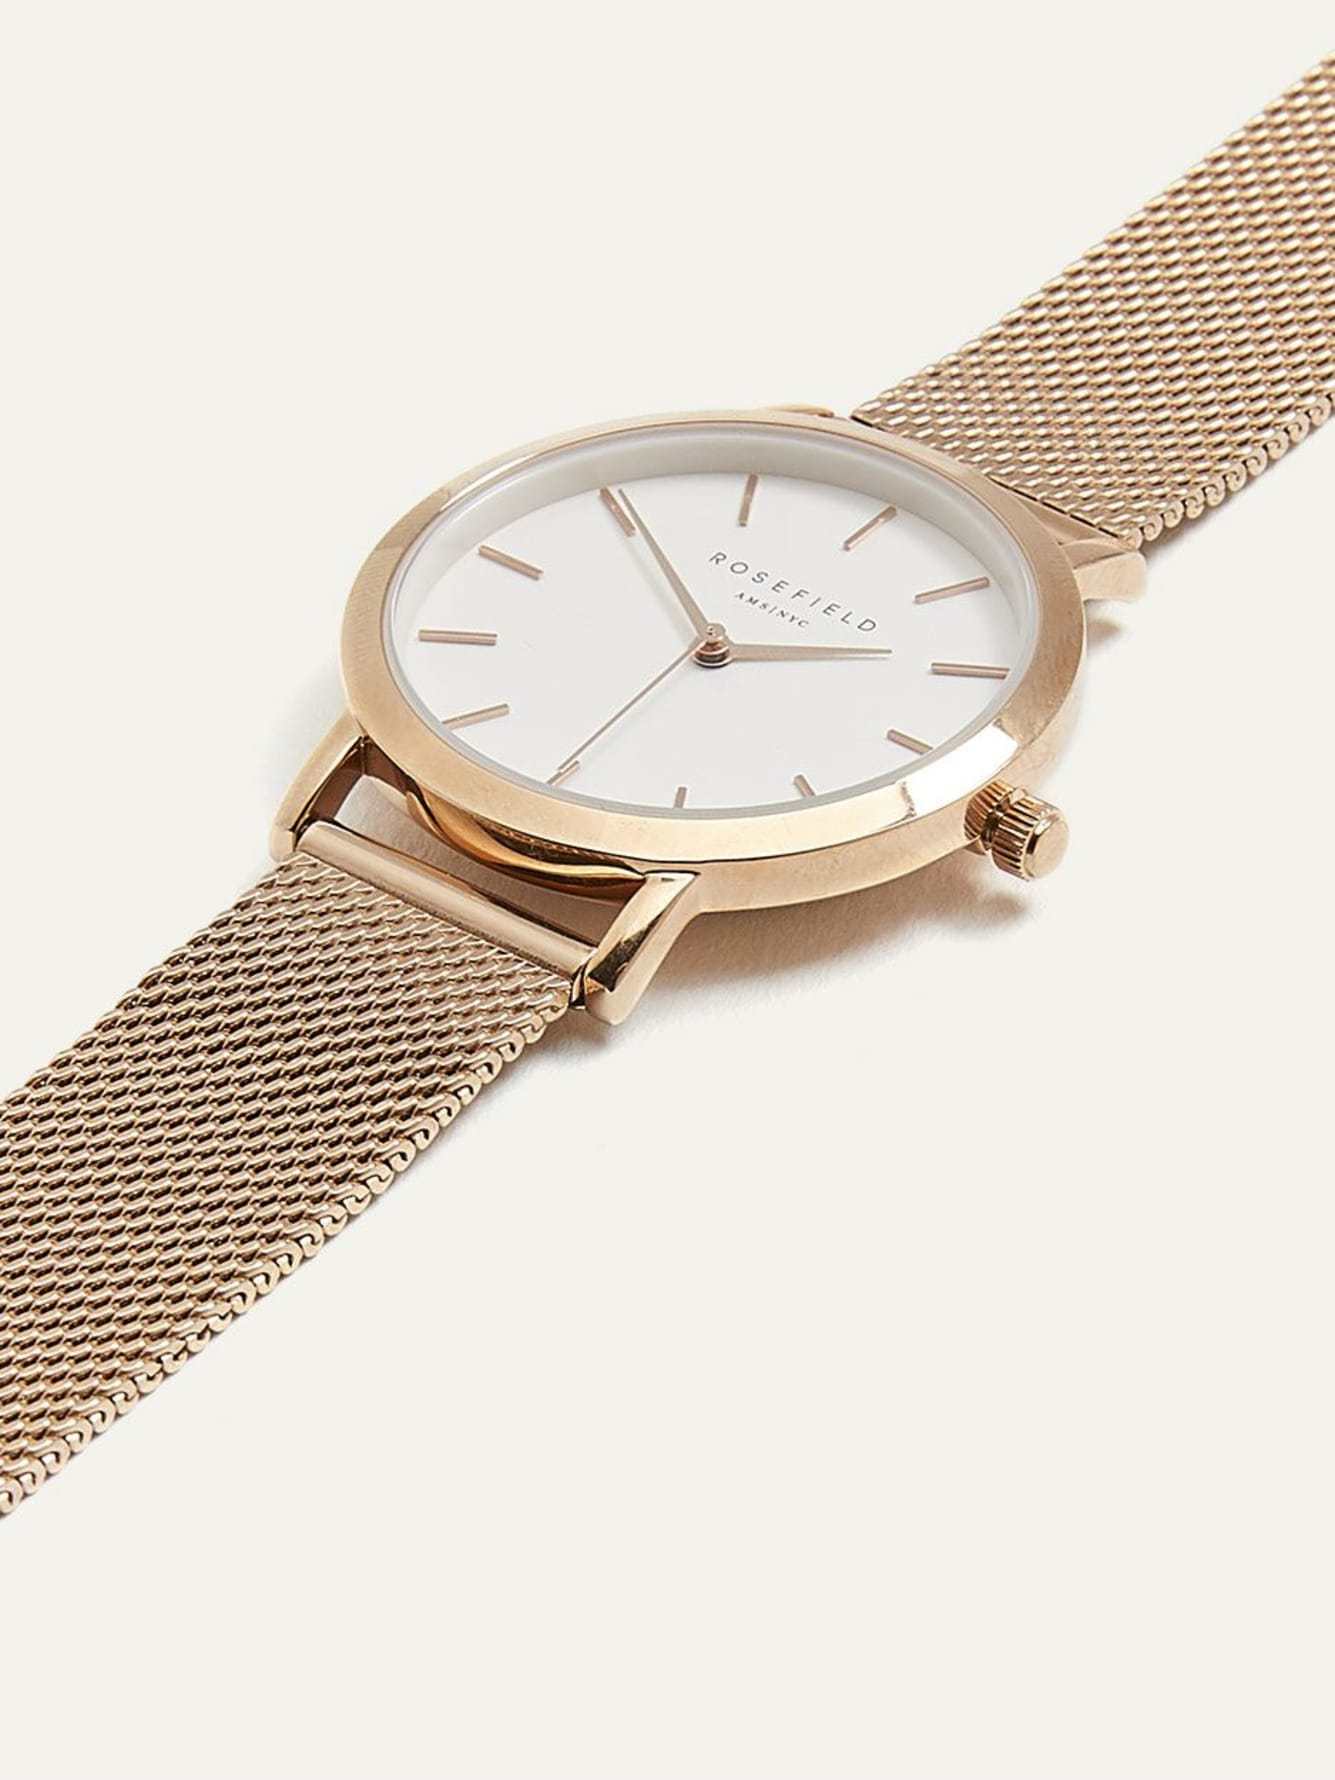 The Tribeca Watch - Rosefield